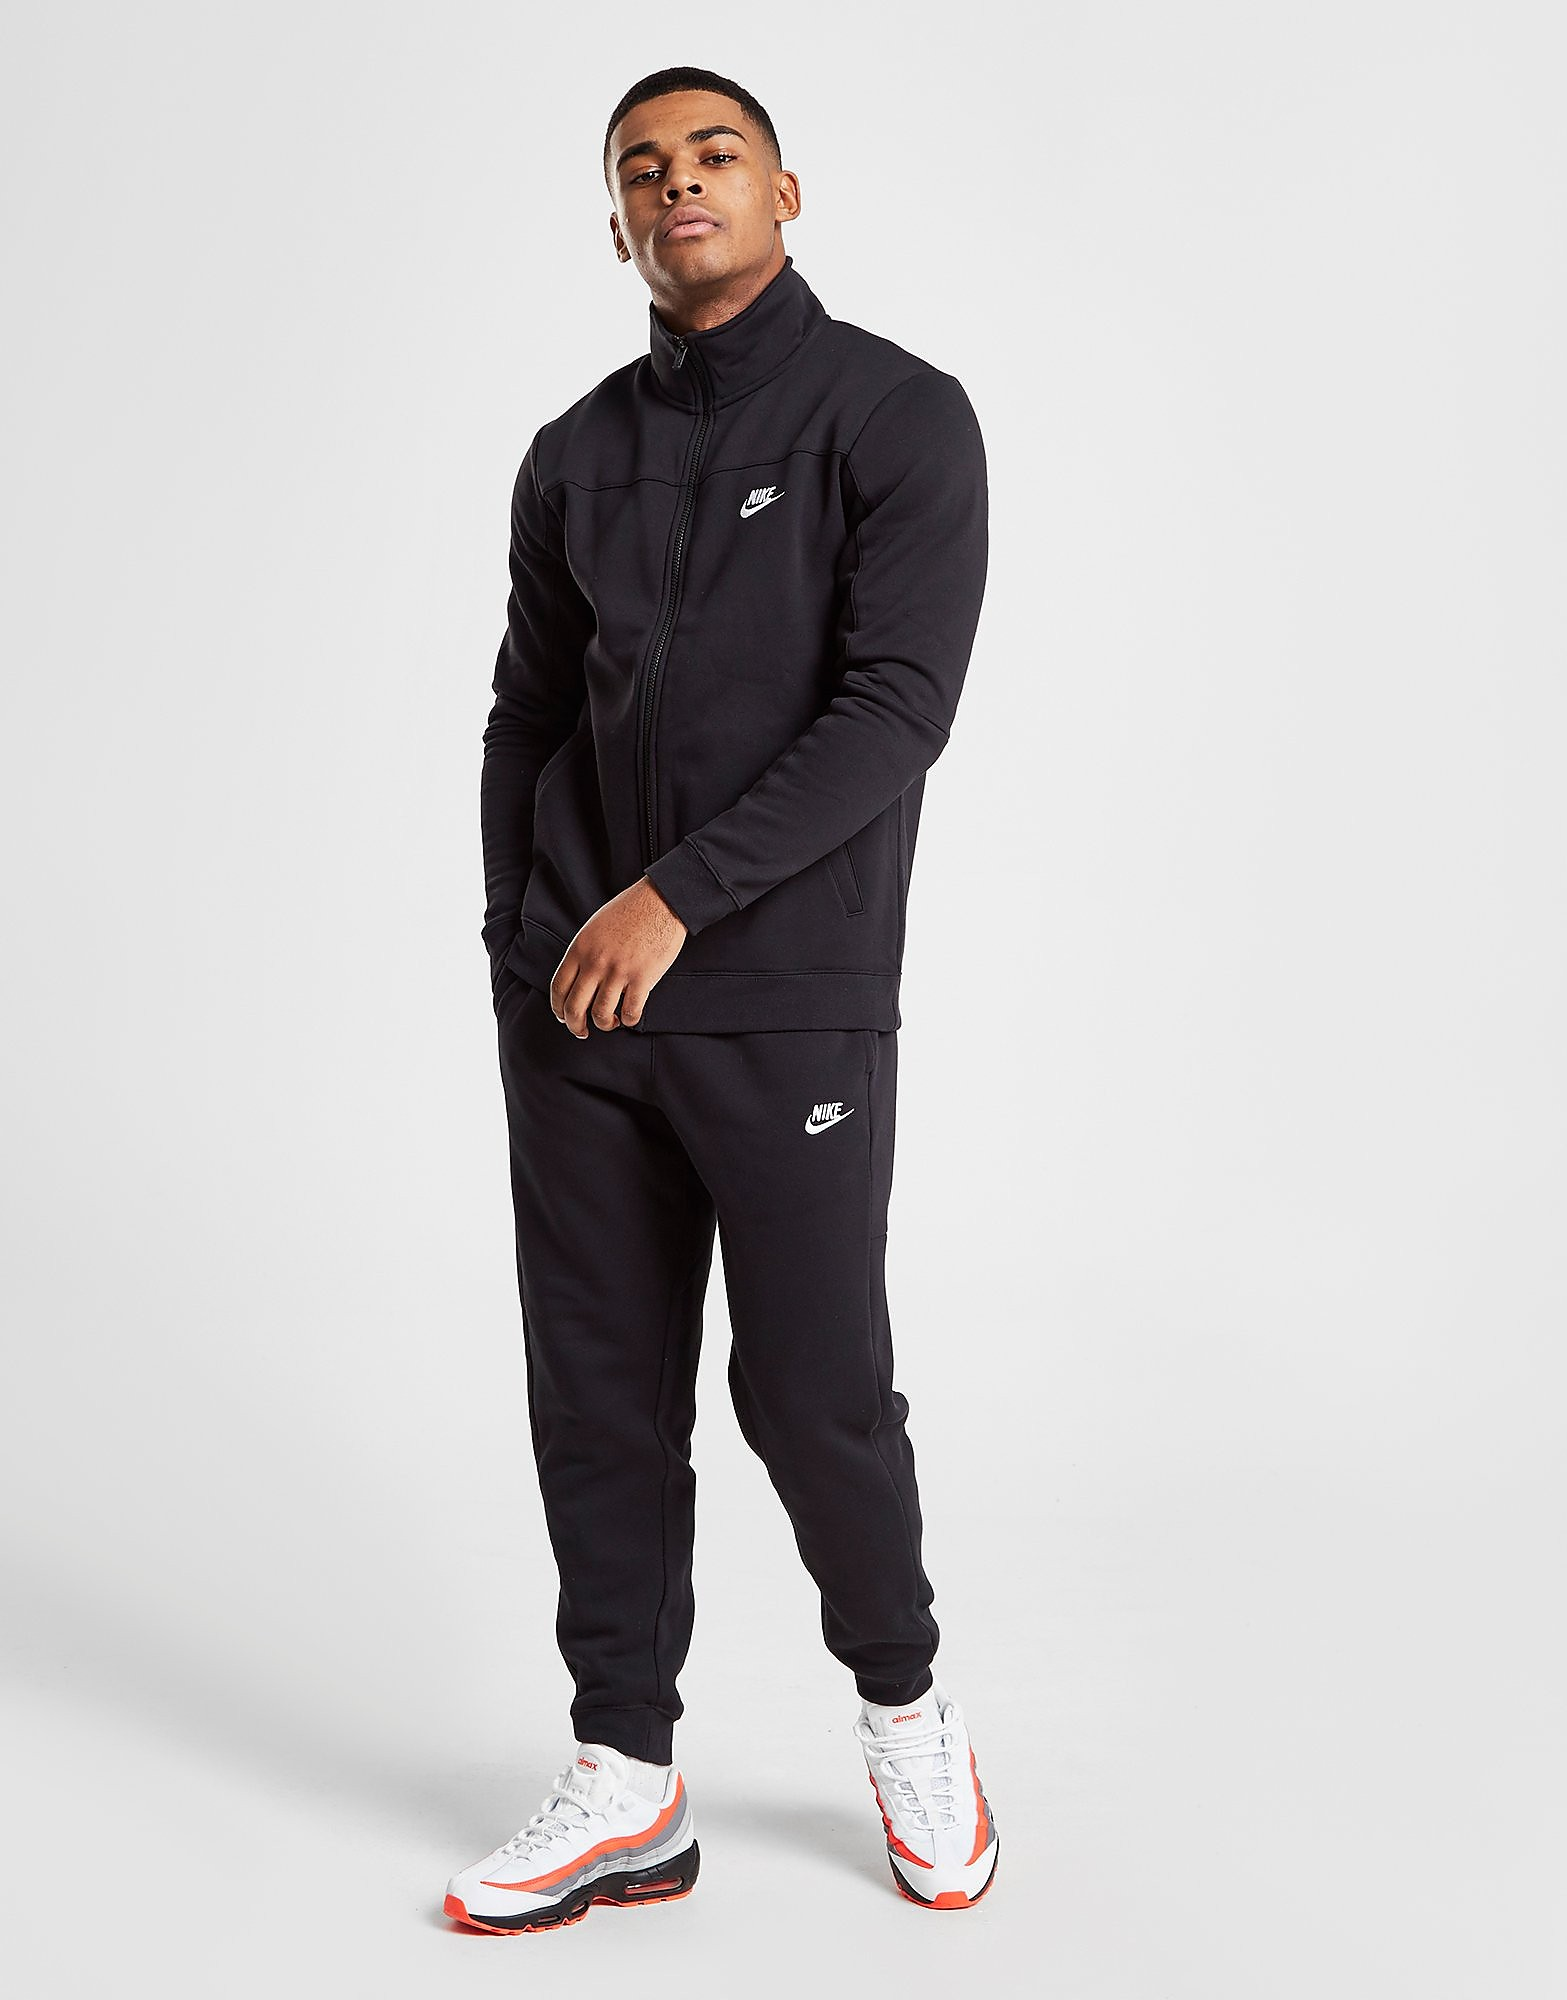 Nike Ensemble Season 2